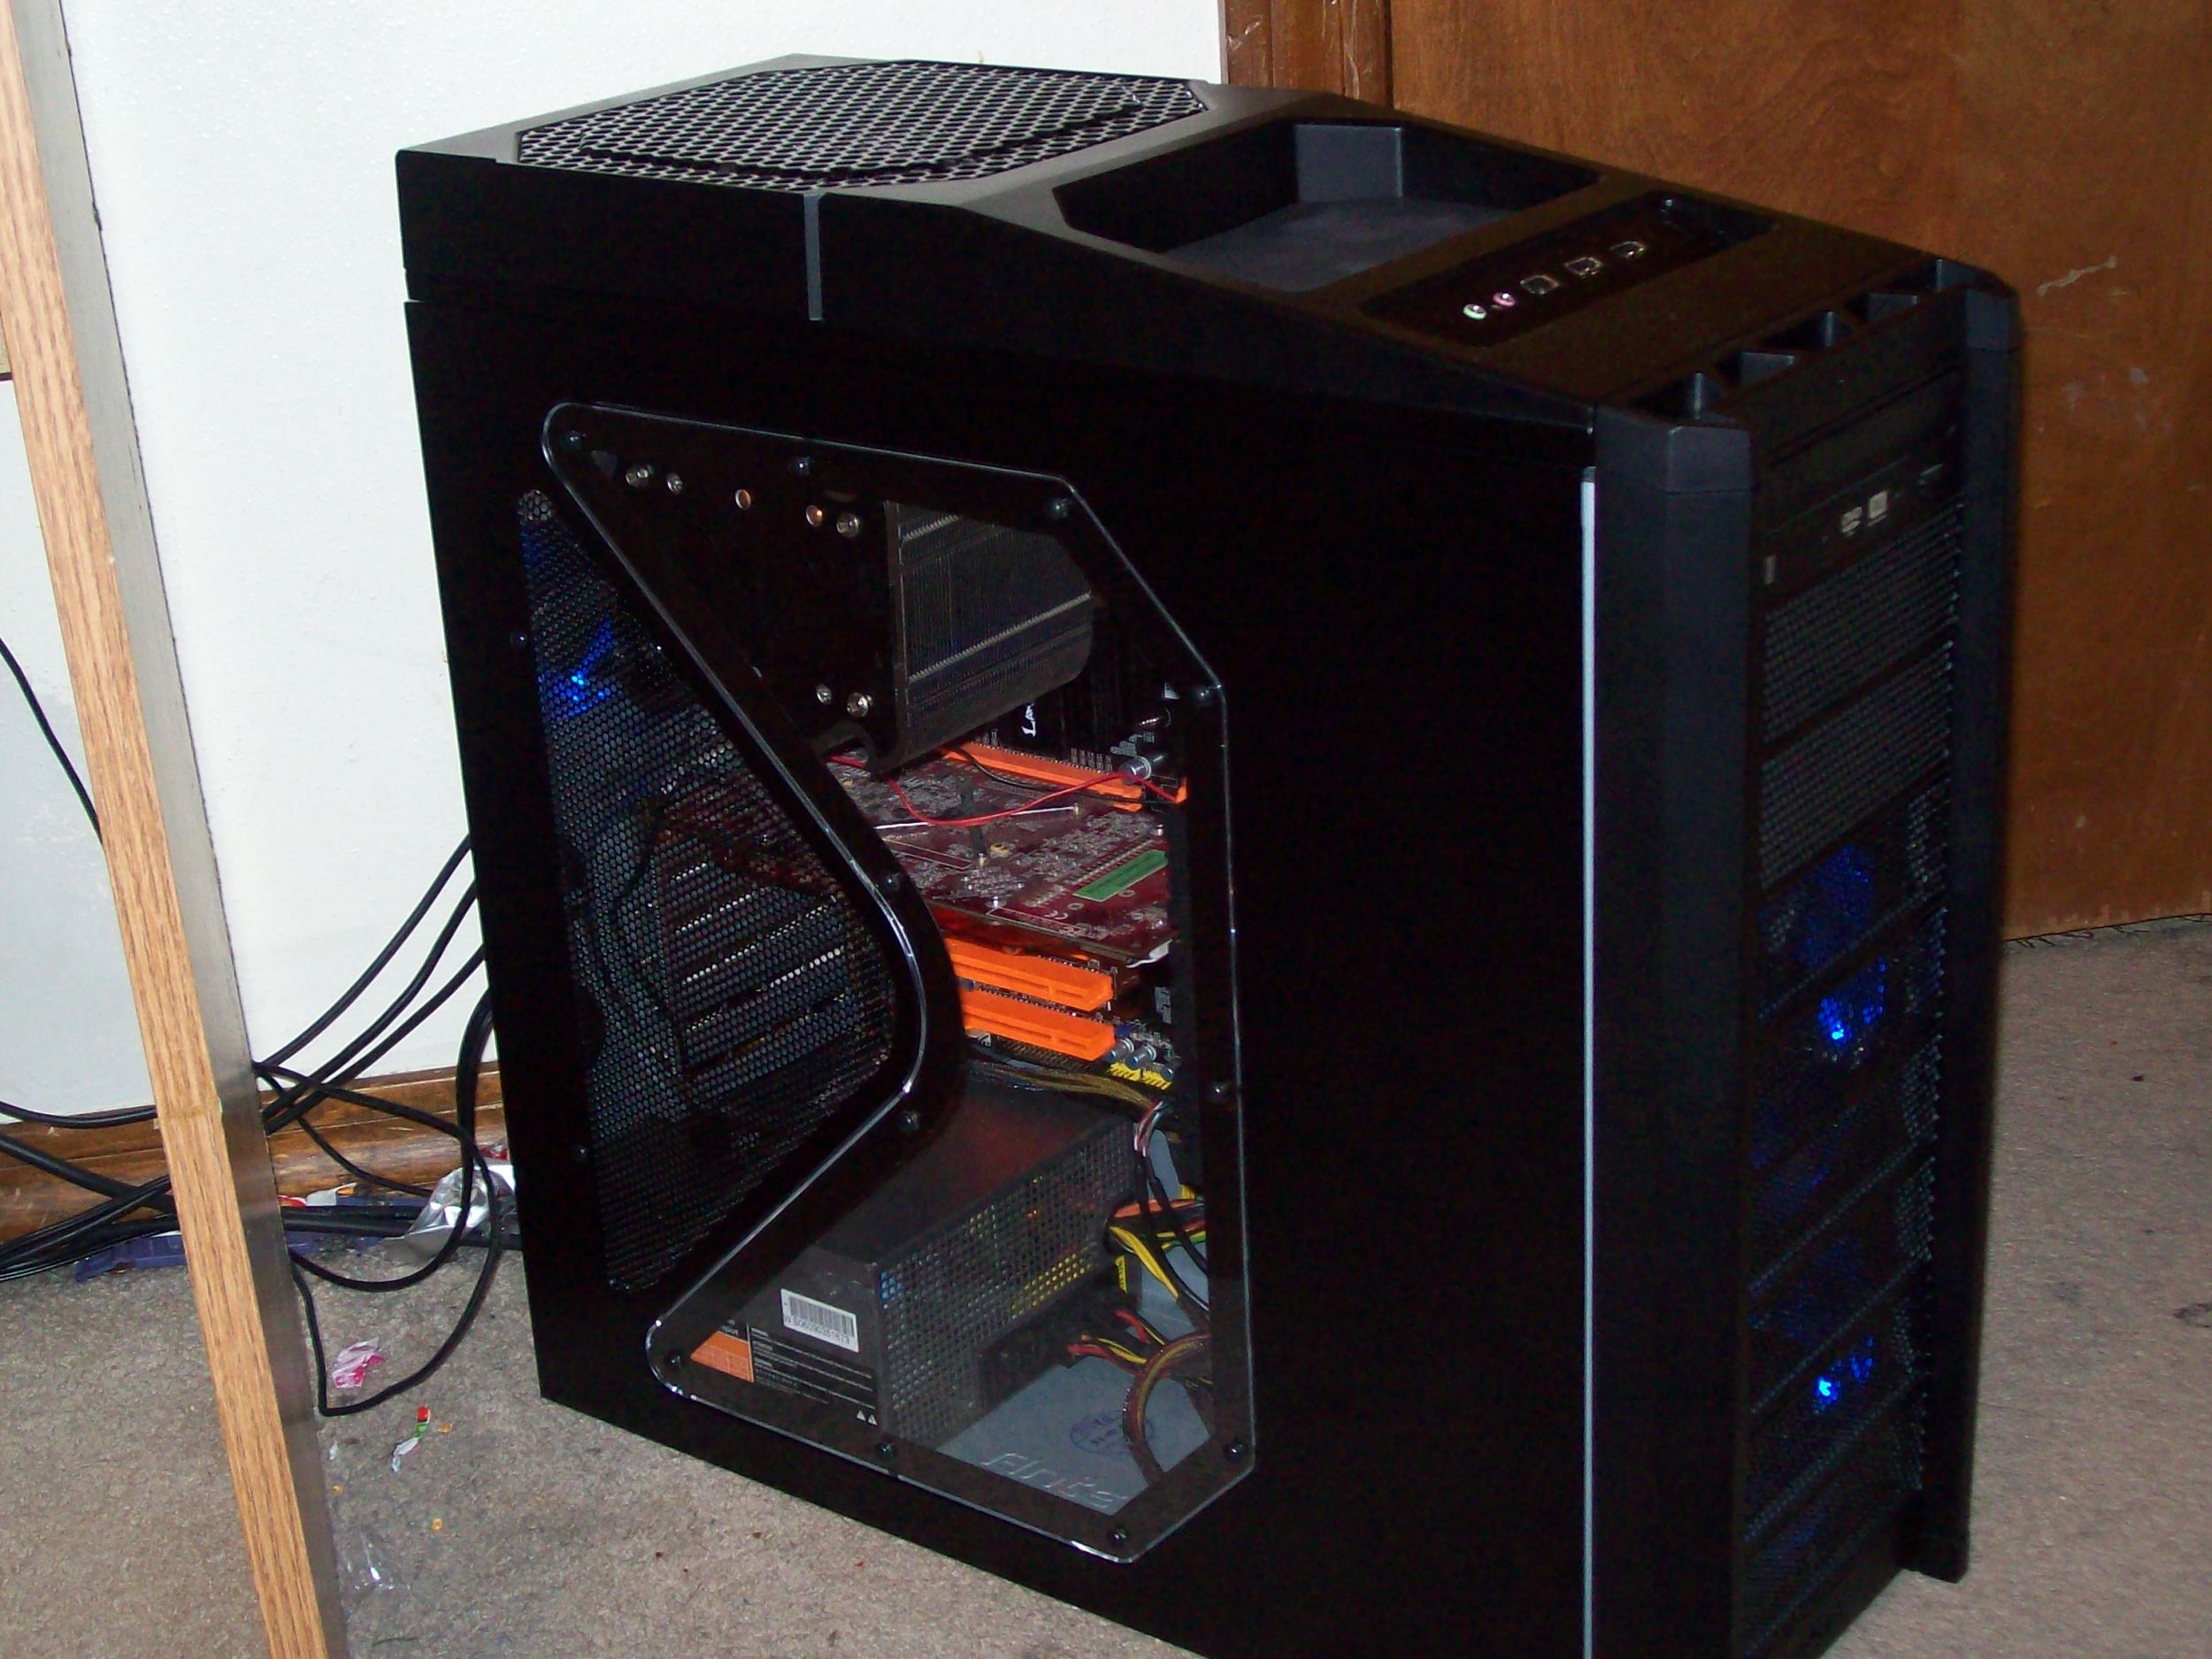 New antec nine hundred and DFI Lanparty DK P35 . =)